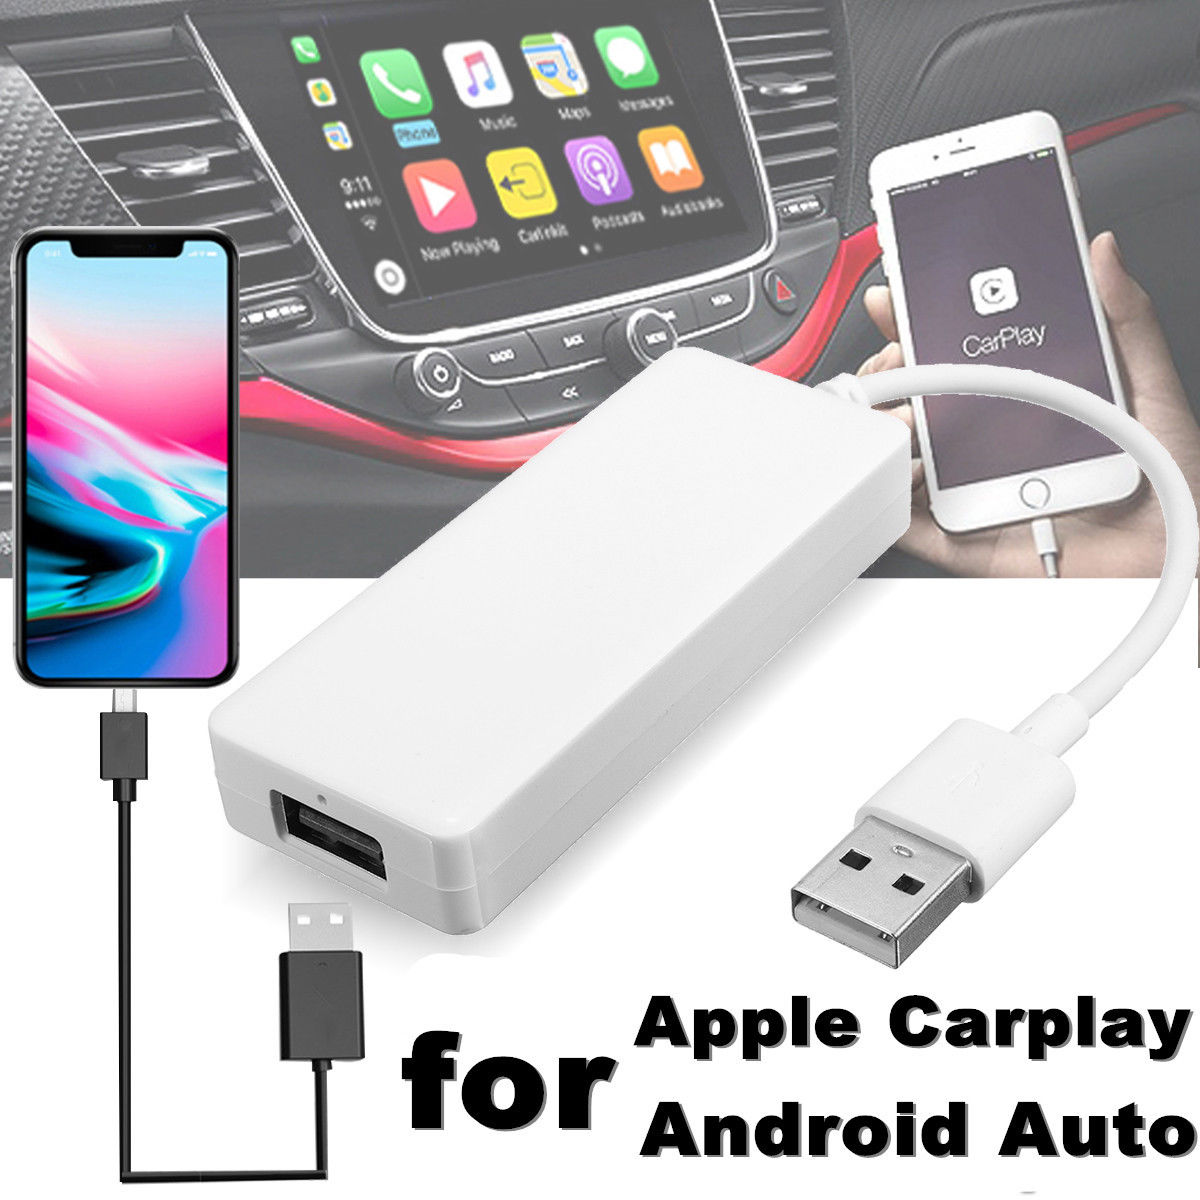 Car Link Dongle Link Dongle Universal Auto Link Dongle Navigation Player USB Dongle For Apple Android